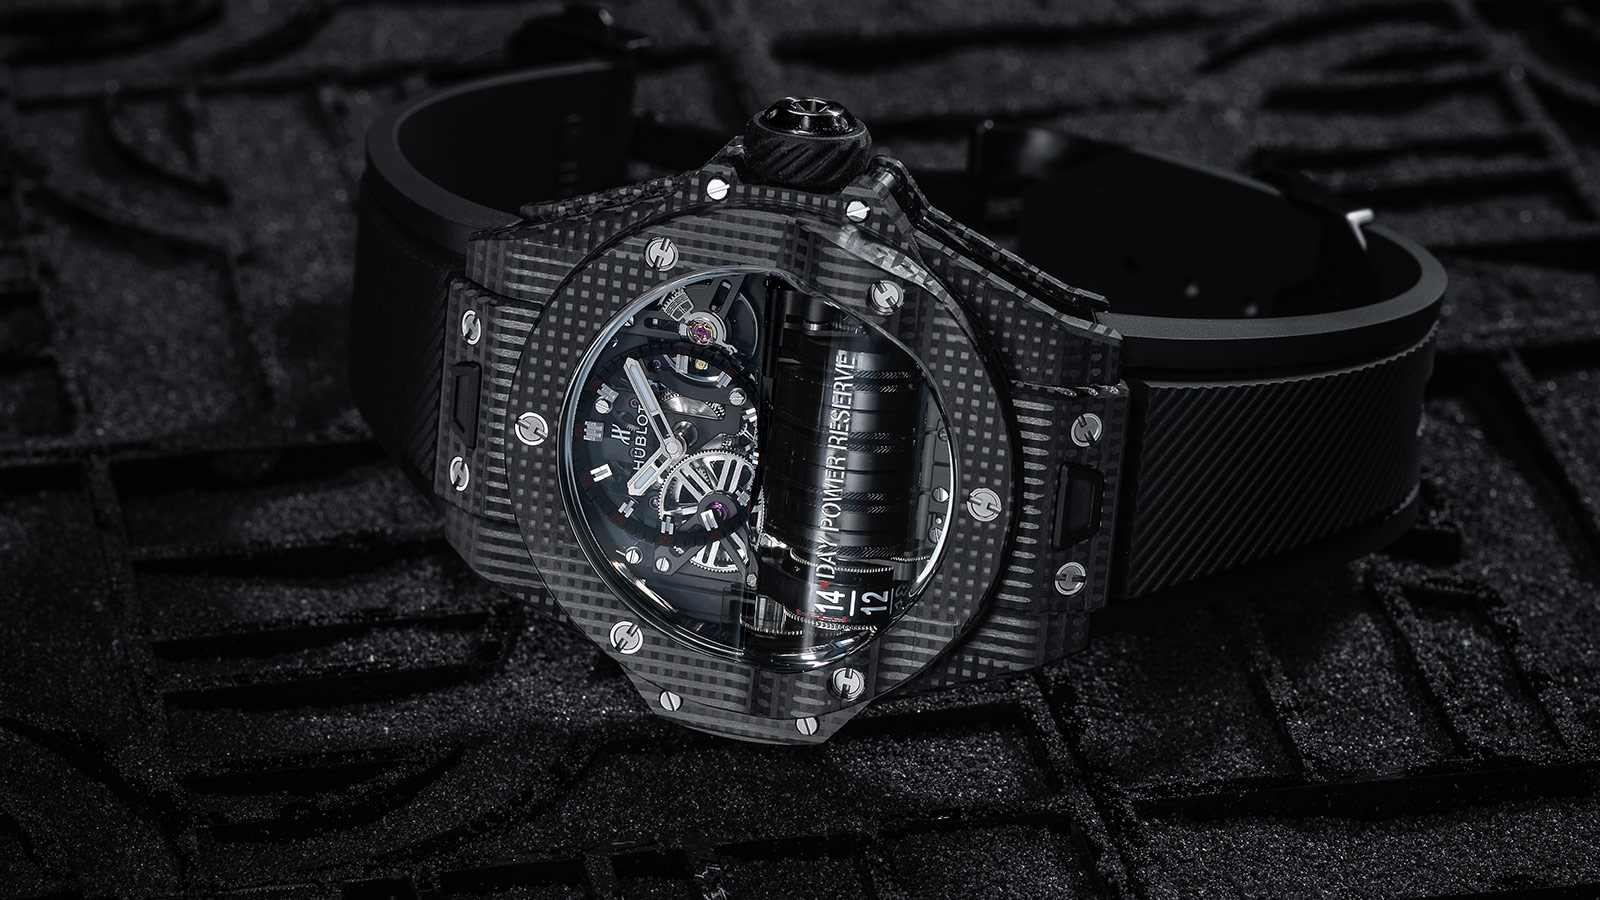 De indrukwekkende Hublot Big Bang MP-11